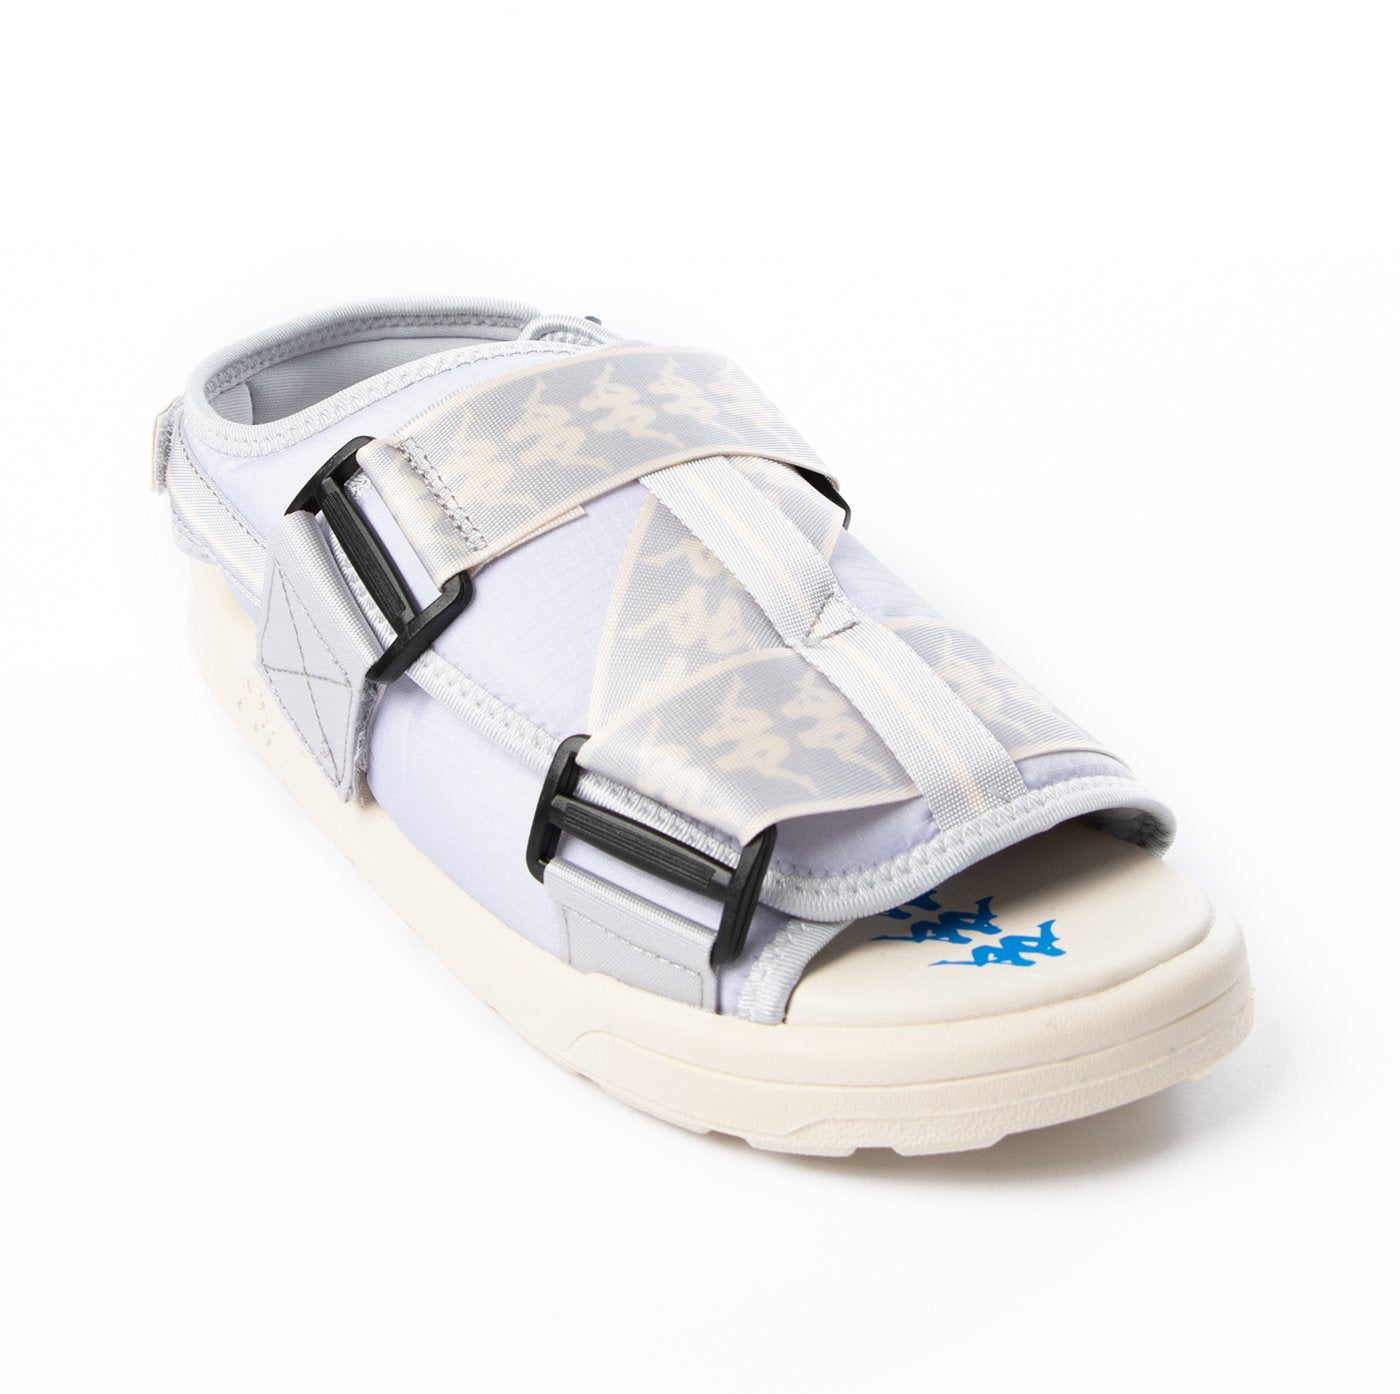 KAPPA- 222 BANDA MITEL 2 SANDALS - GREY WHITE BLUE